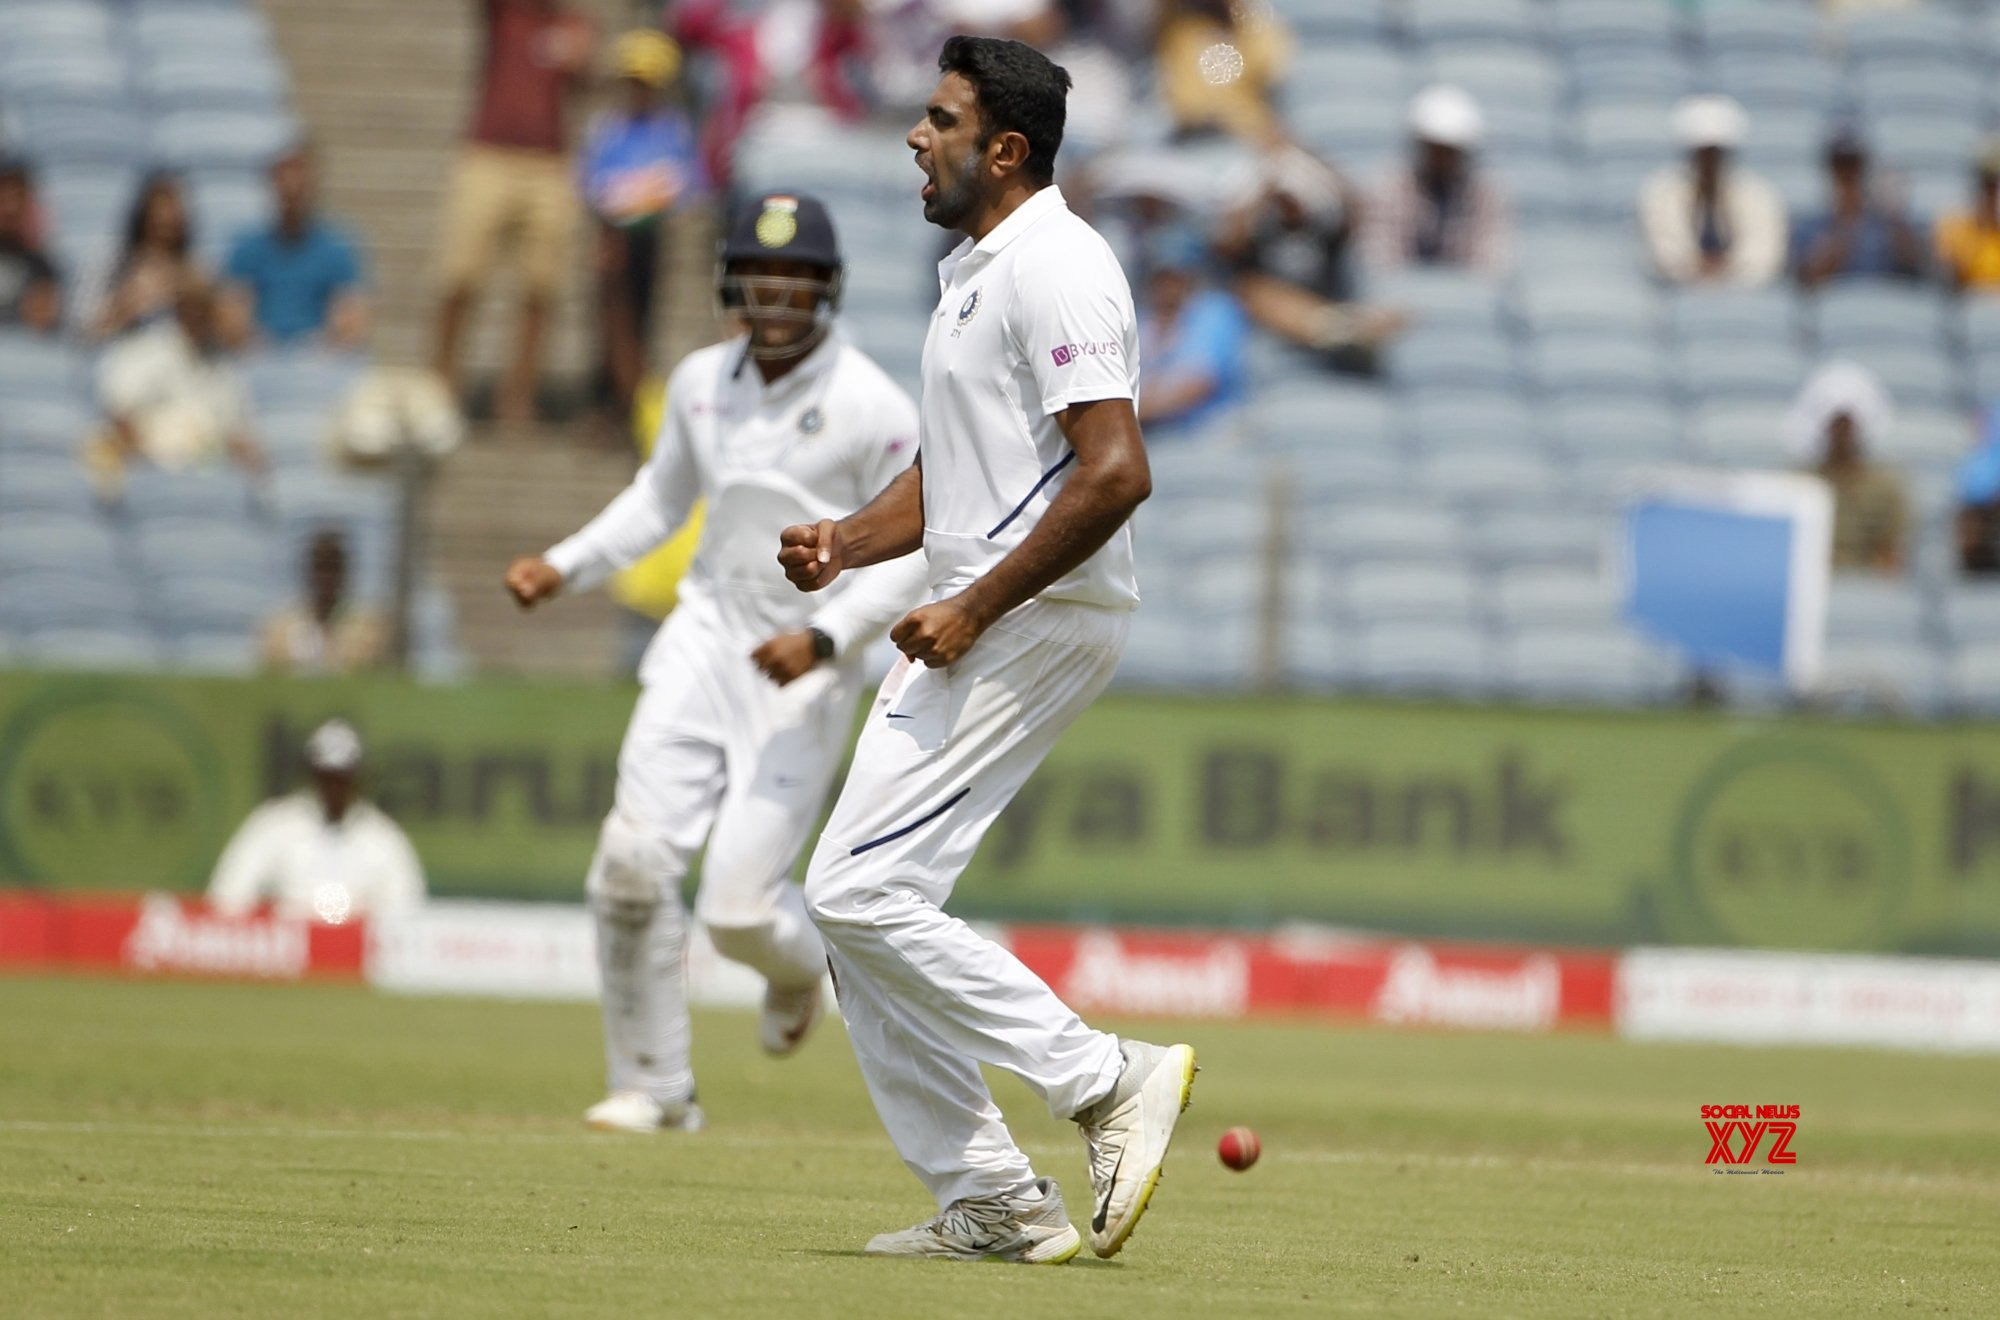 Pune: 2nd Test - India Vs South Africa - Day 3 (Batch - 14) #Gallery